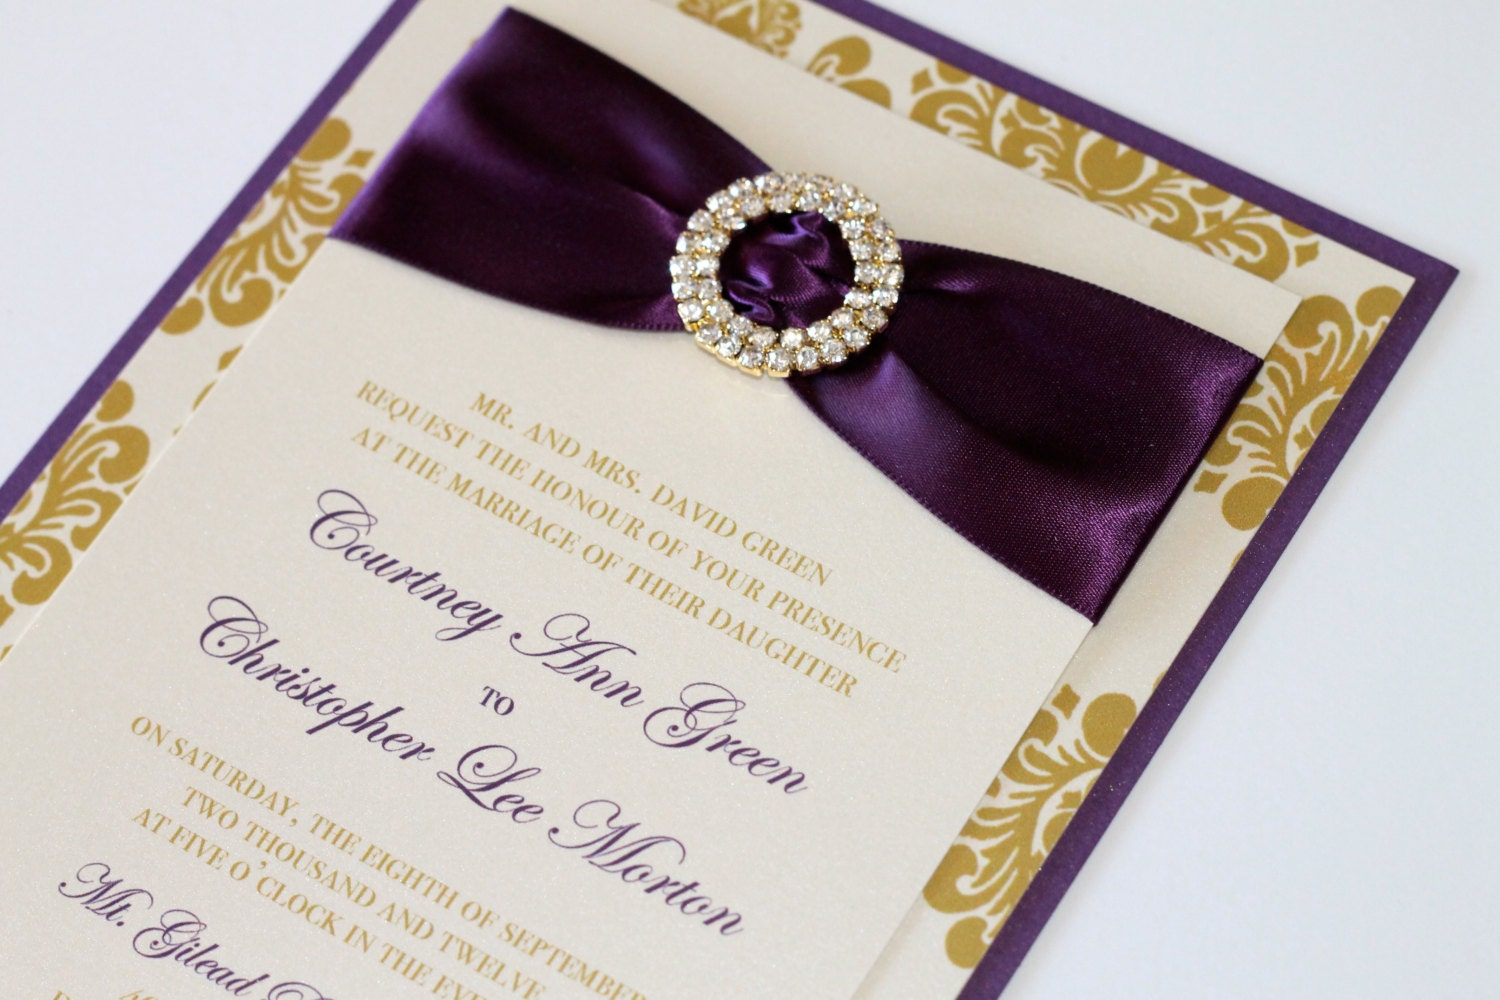 Courtney Damask Wedding Invitation Embellished Wedding